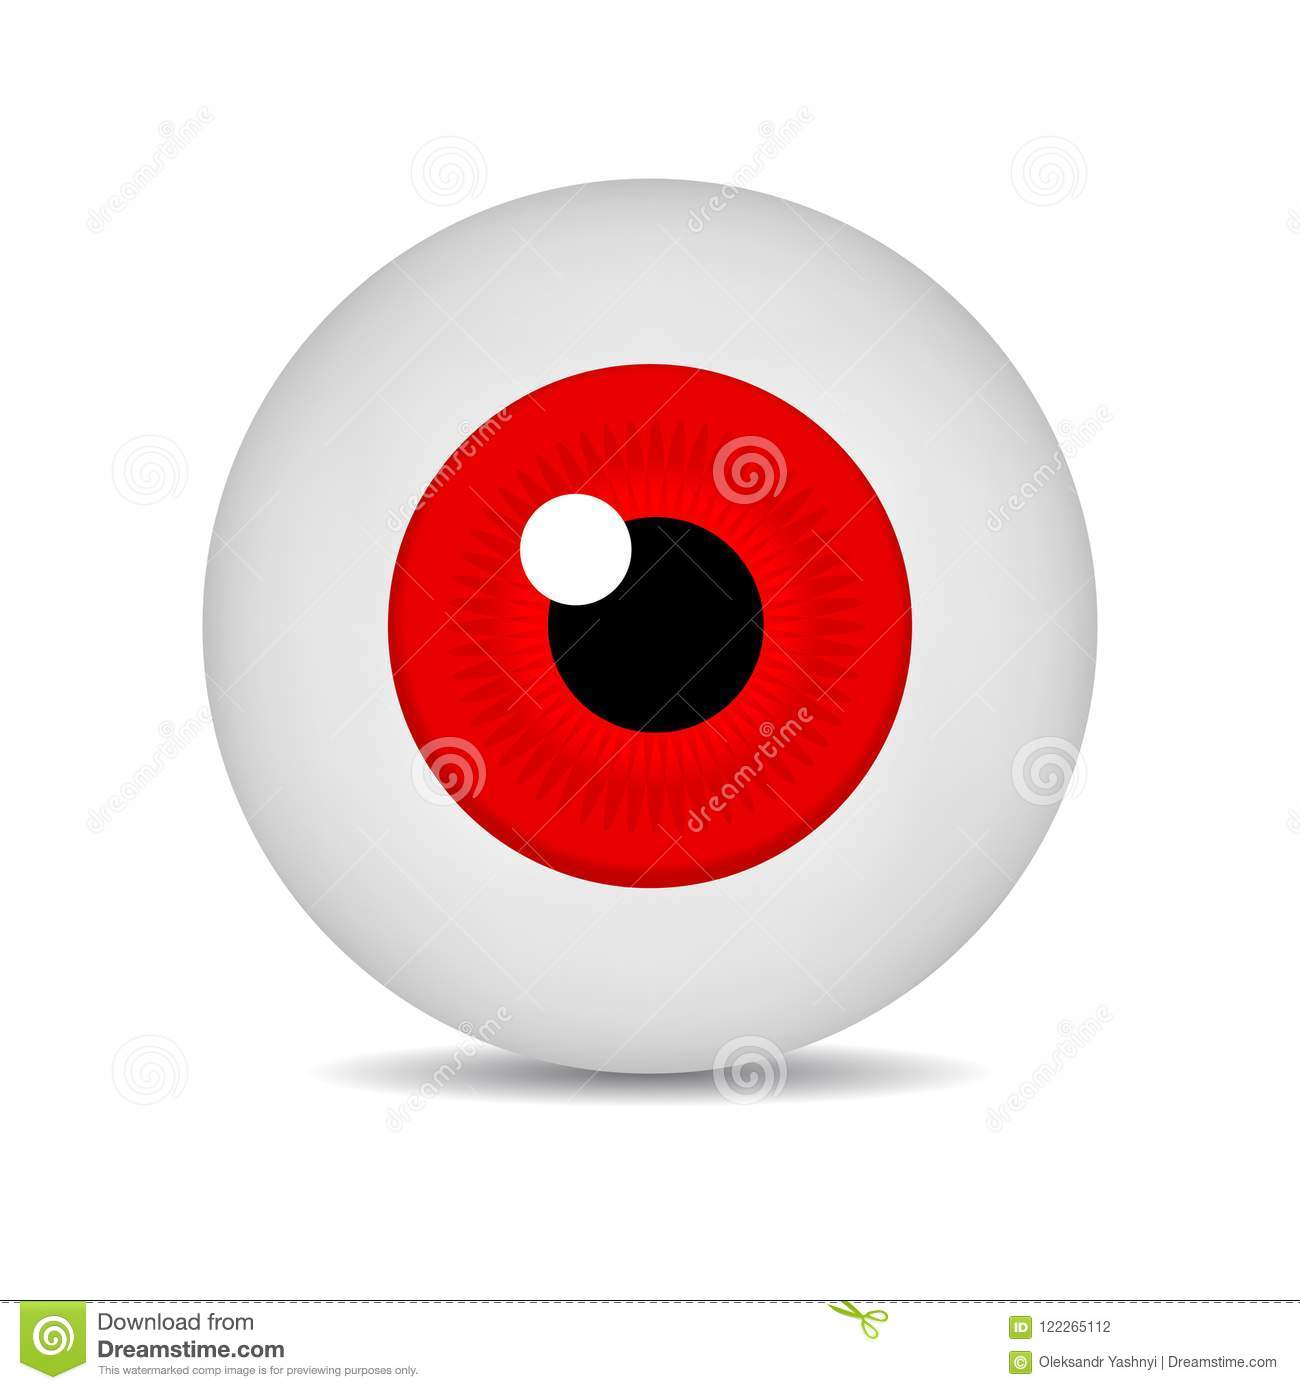 realistic vector illustration icon 3d round image red eyeball red